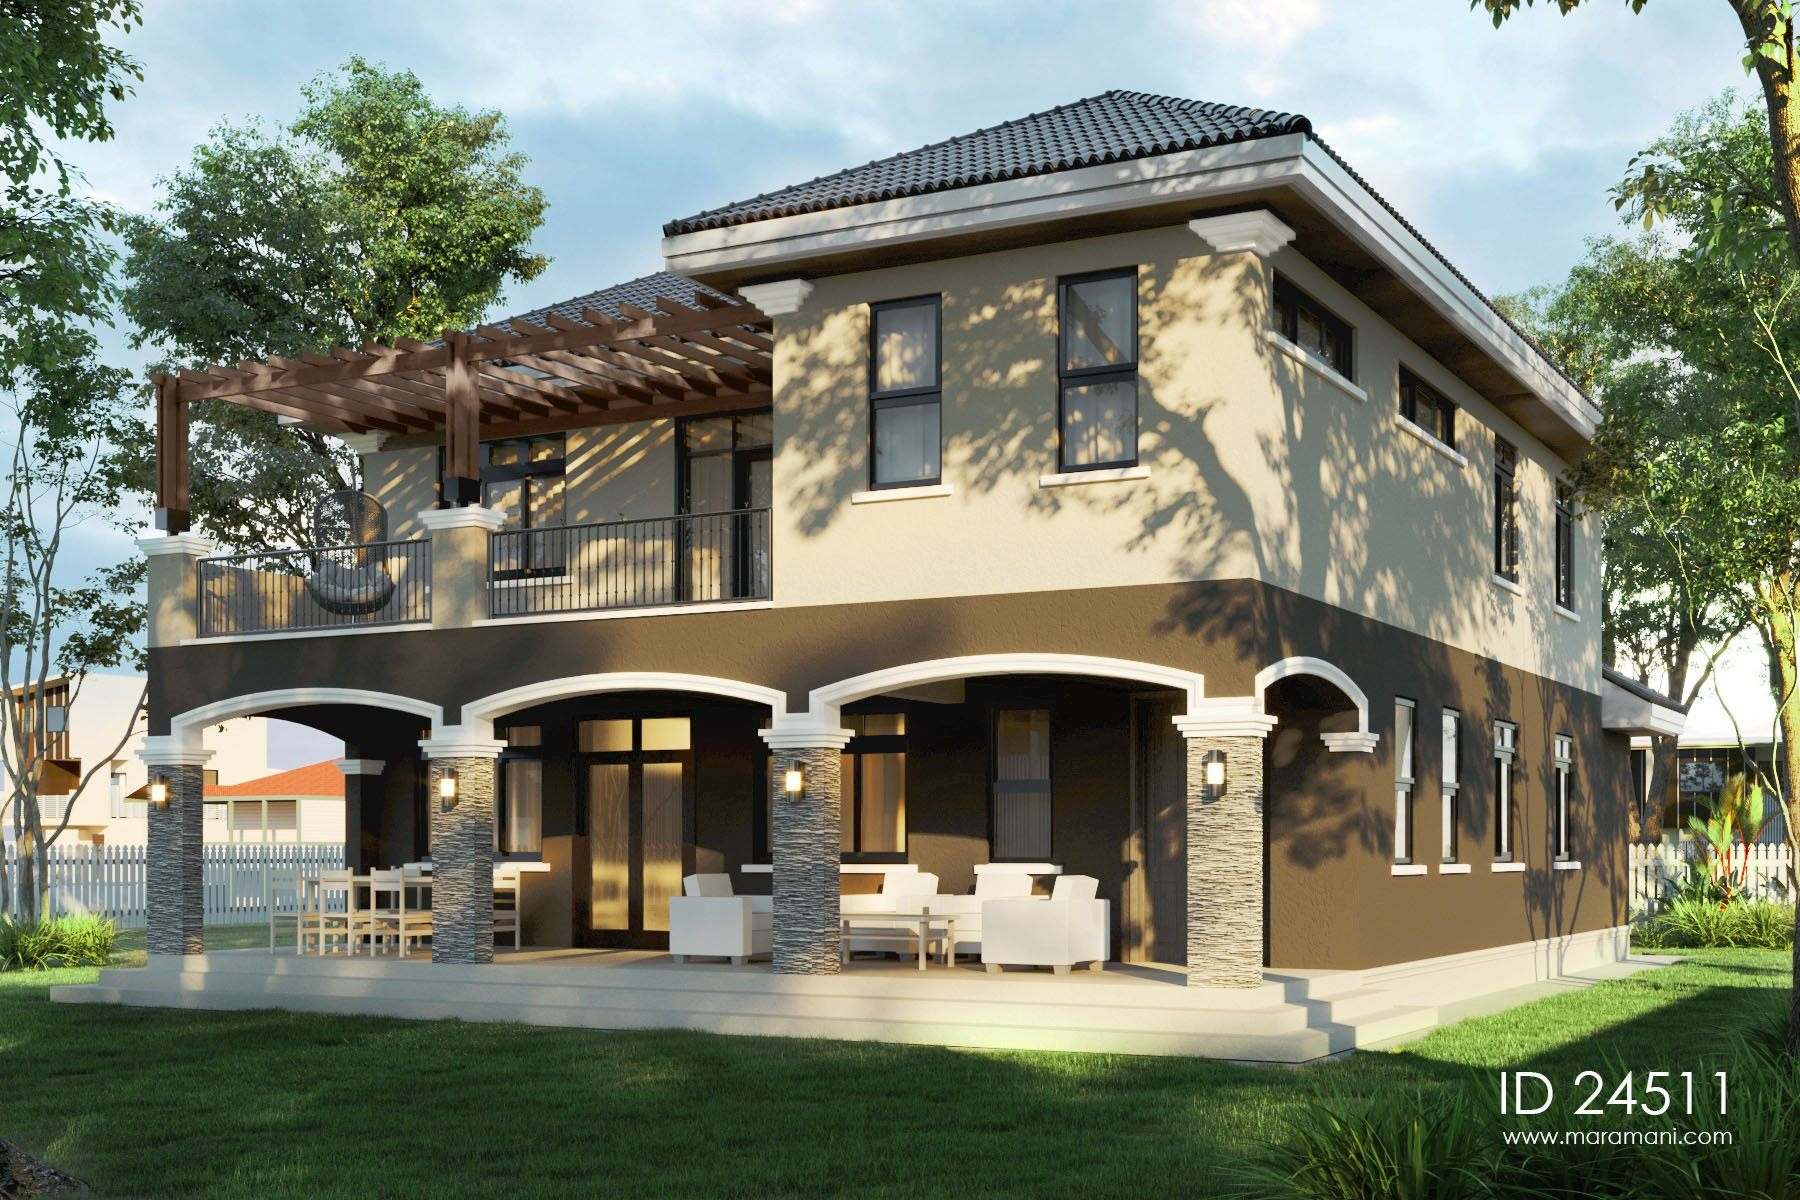 4 Bedroom Modern Design - ID 24511 - Design by Maramani